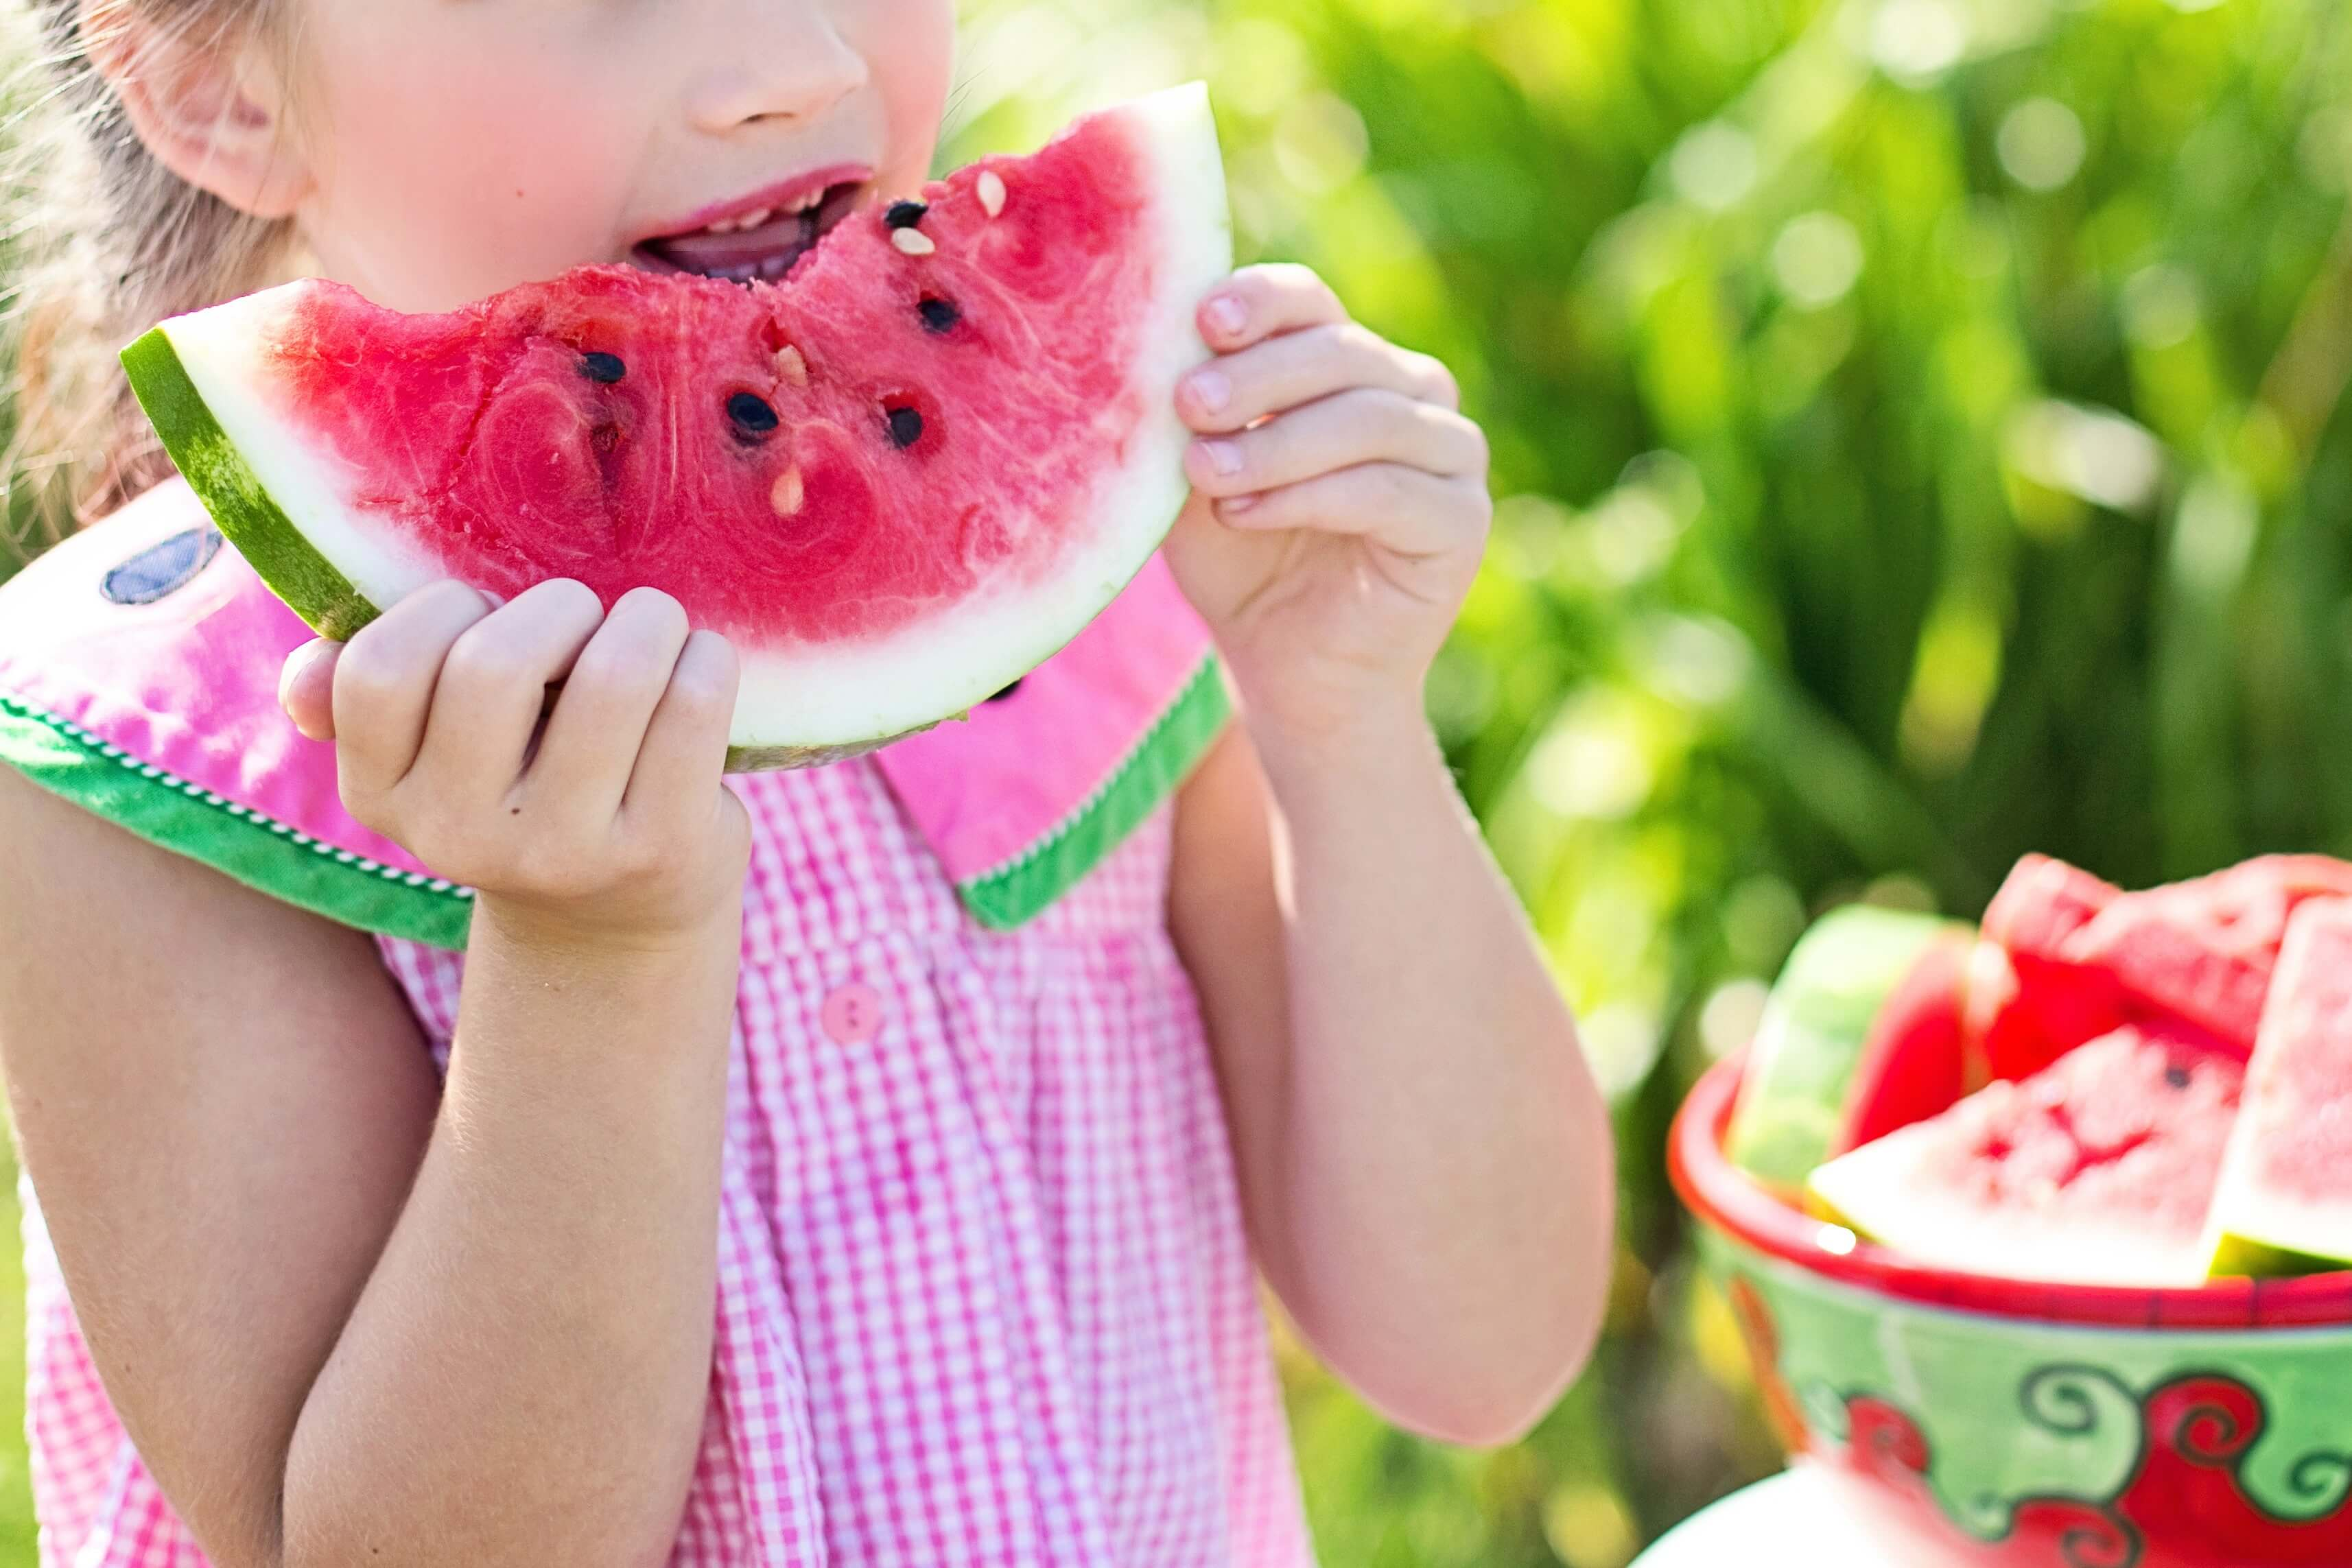 girl child eating watermelon, activities for last days of summer